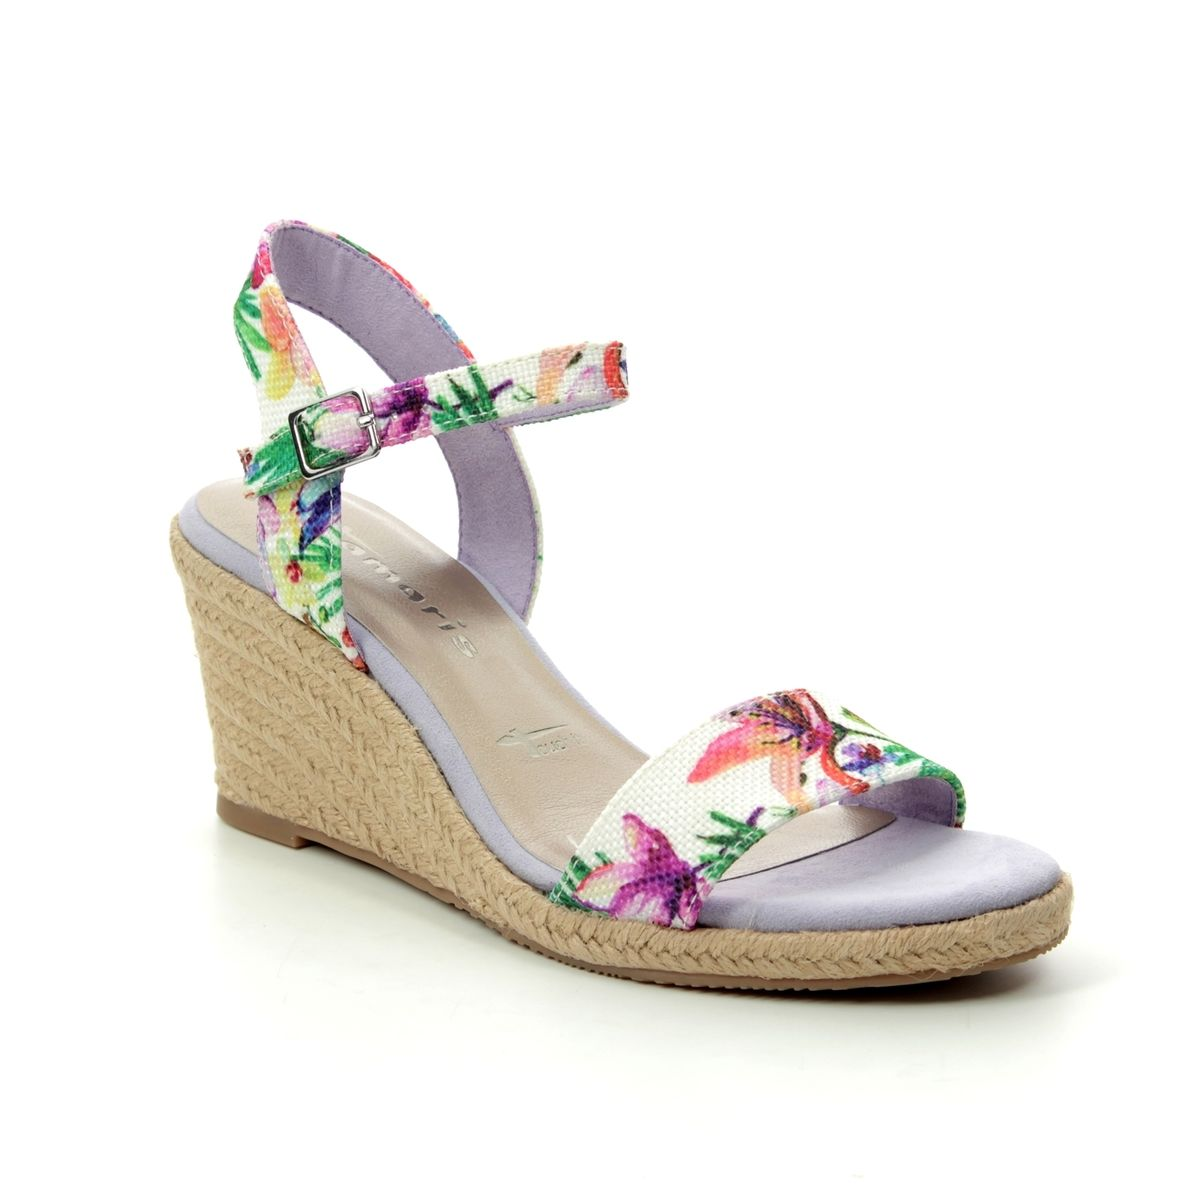 c4dfc1d6264 Tamaris Wedge Sandals - Floral print - 28300 22 908 LIVIA 91